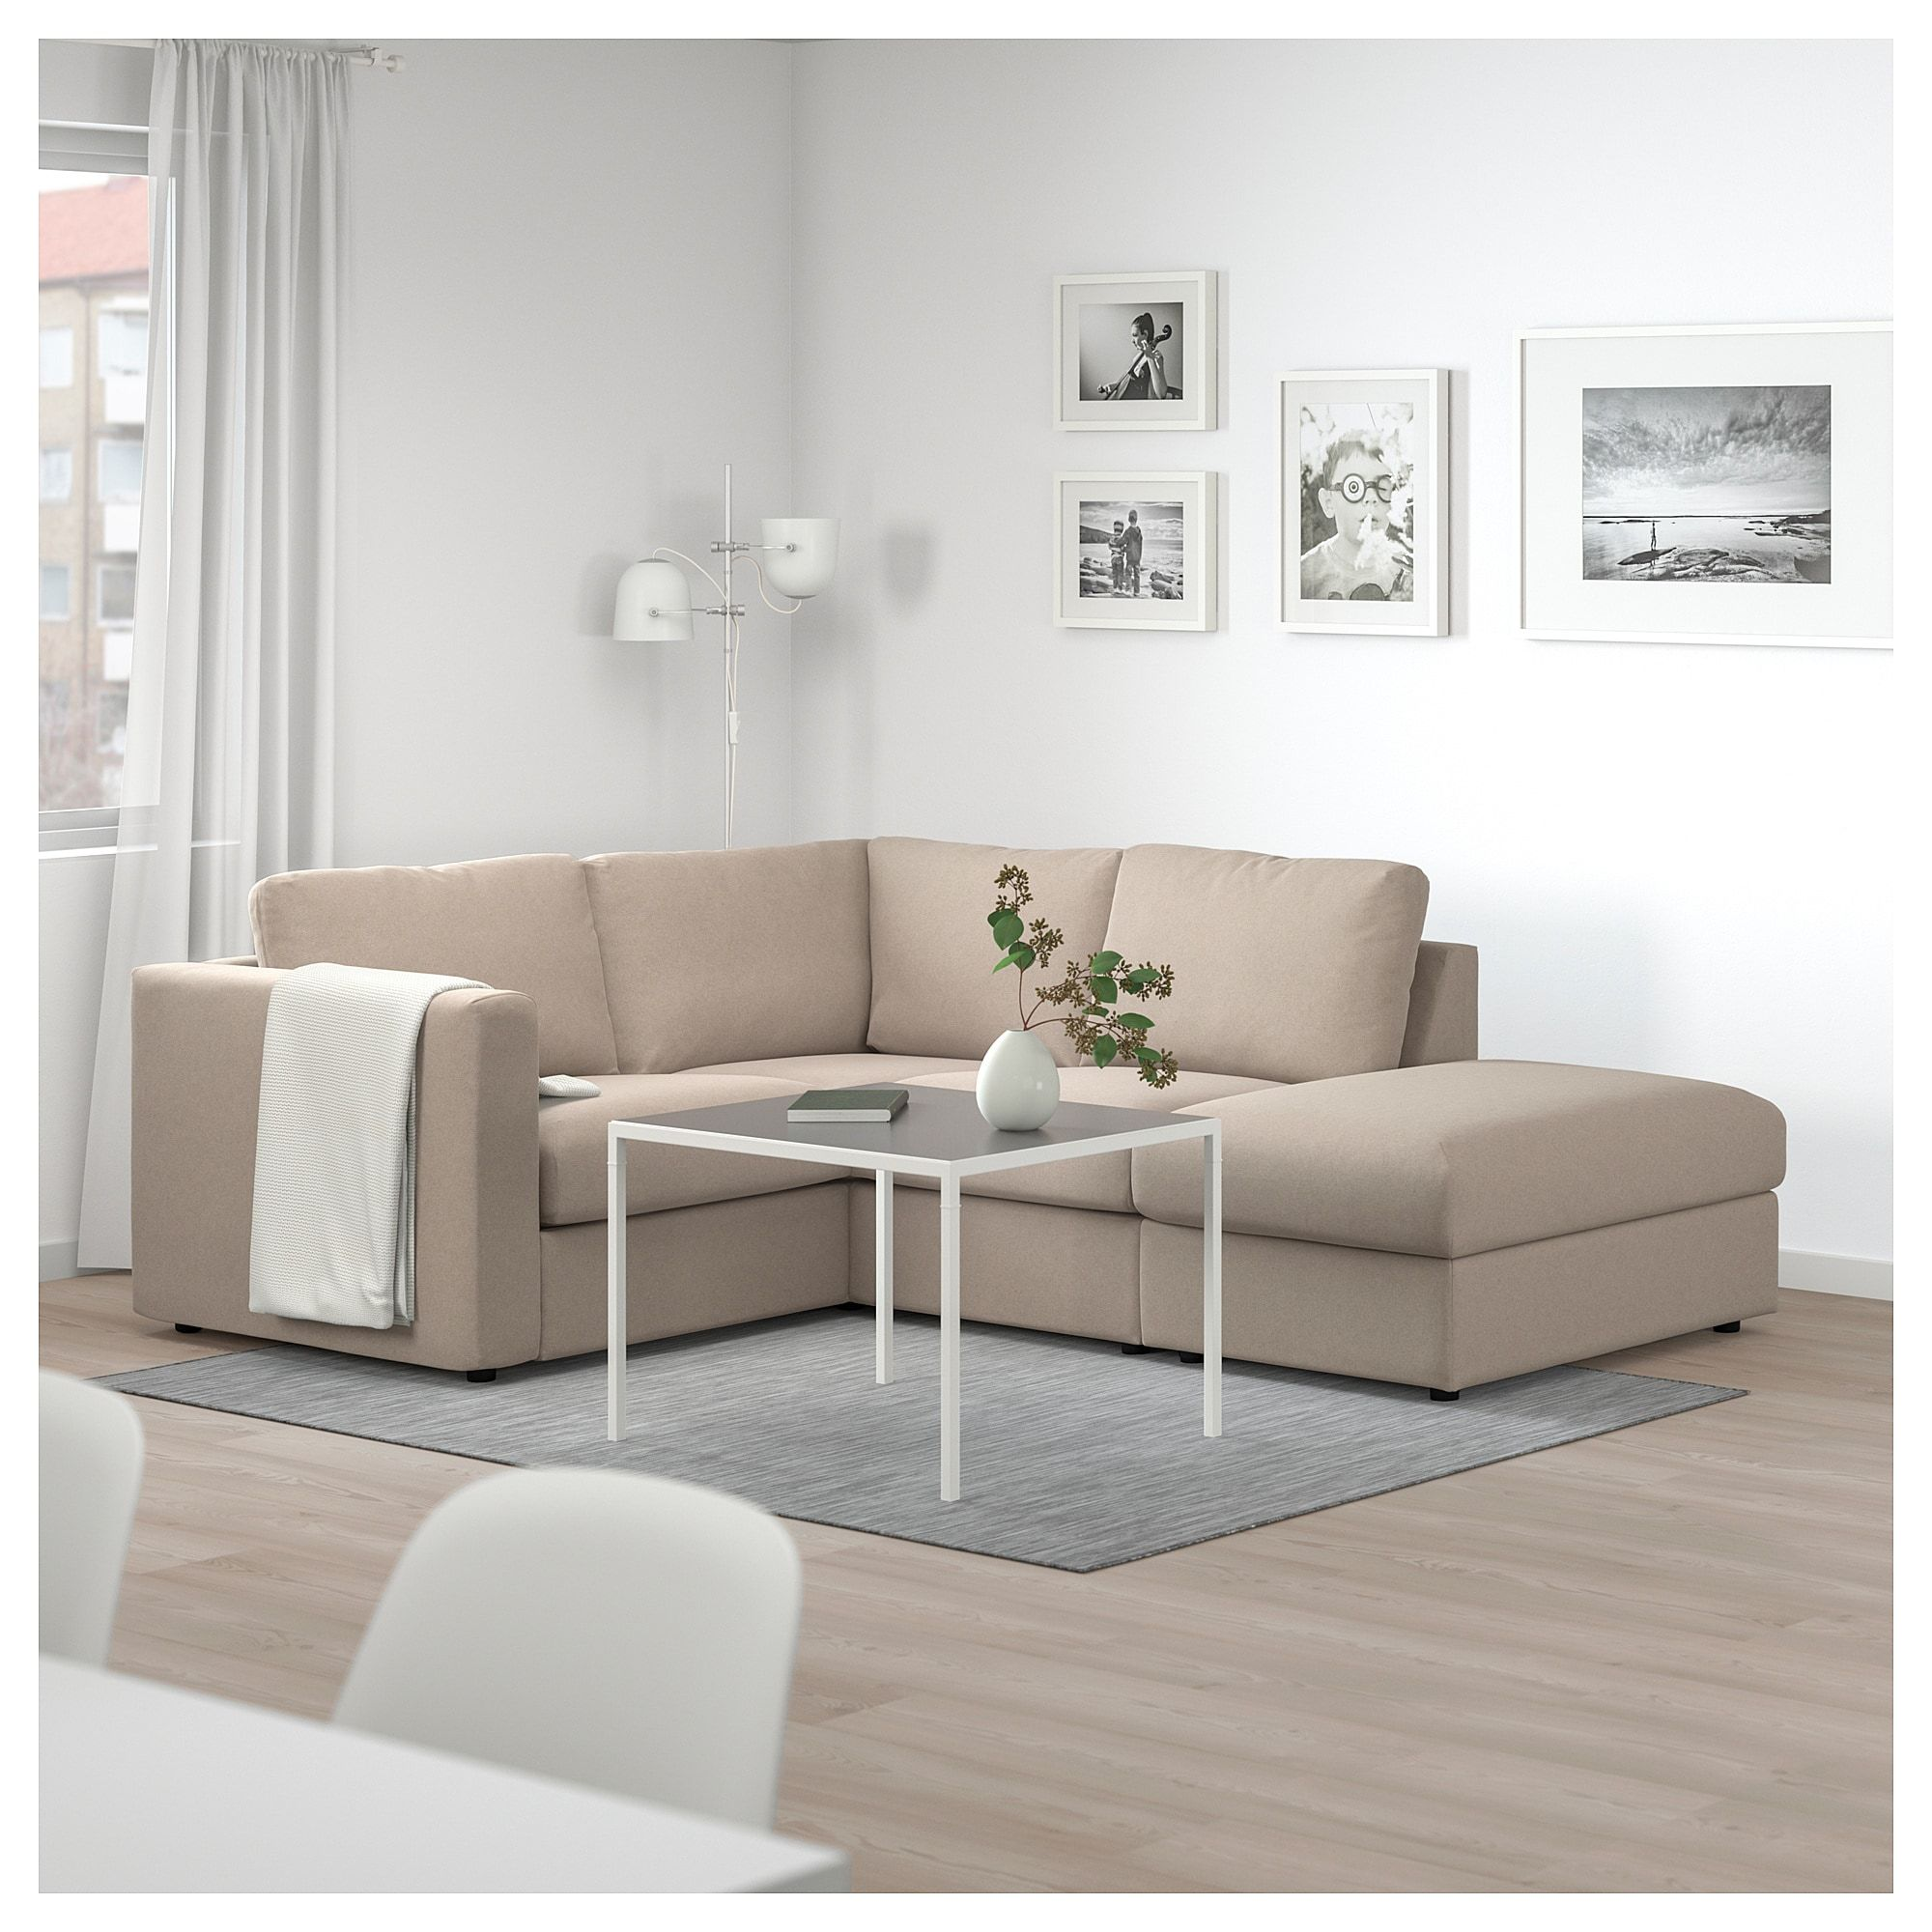 VIMLE Sectional, 3-seat Corner, With Open End, Tallmyra